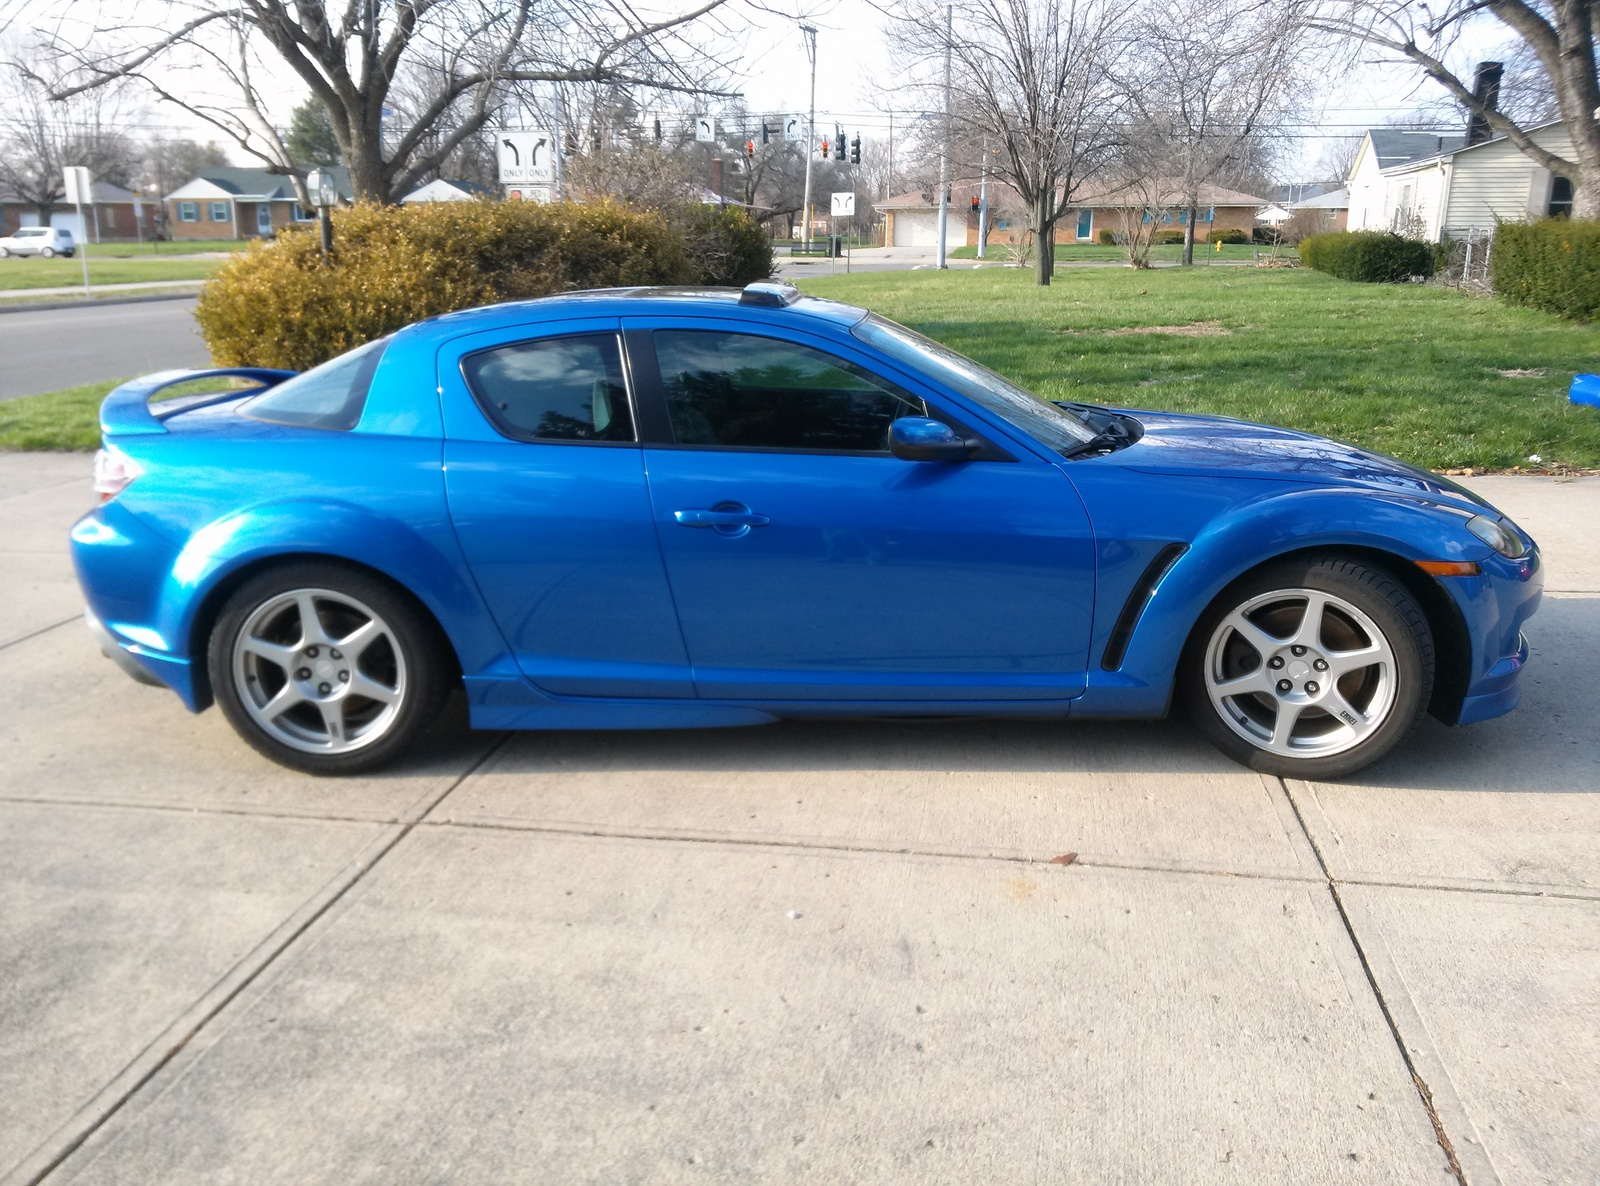 2005 Mazda RX-8 - Overview - CarGurus